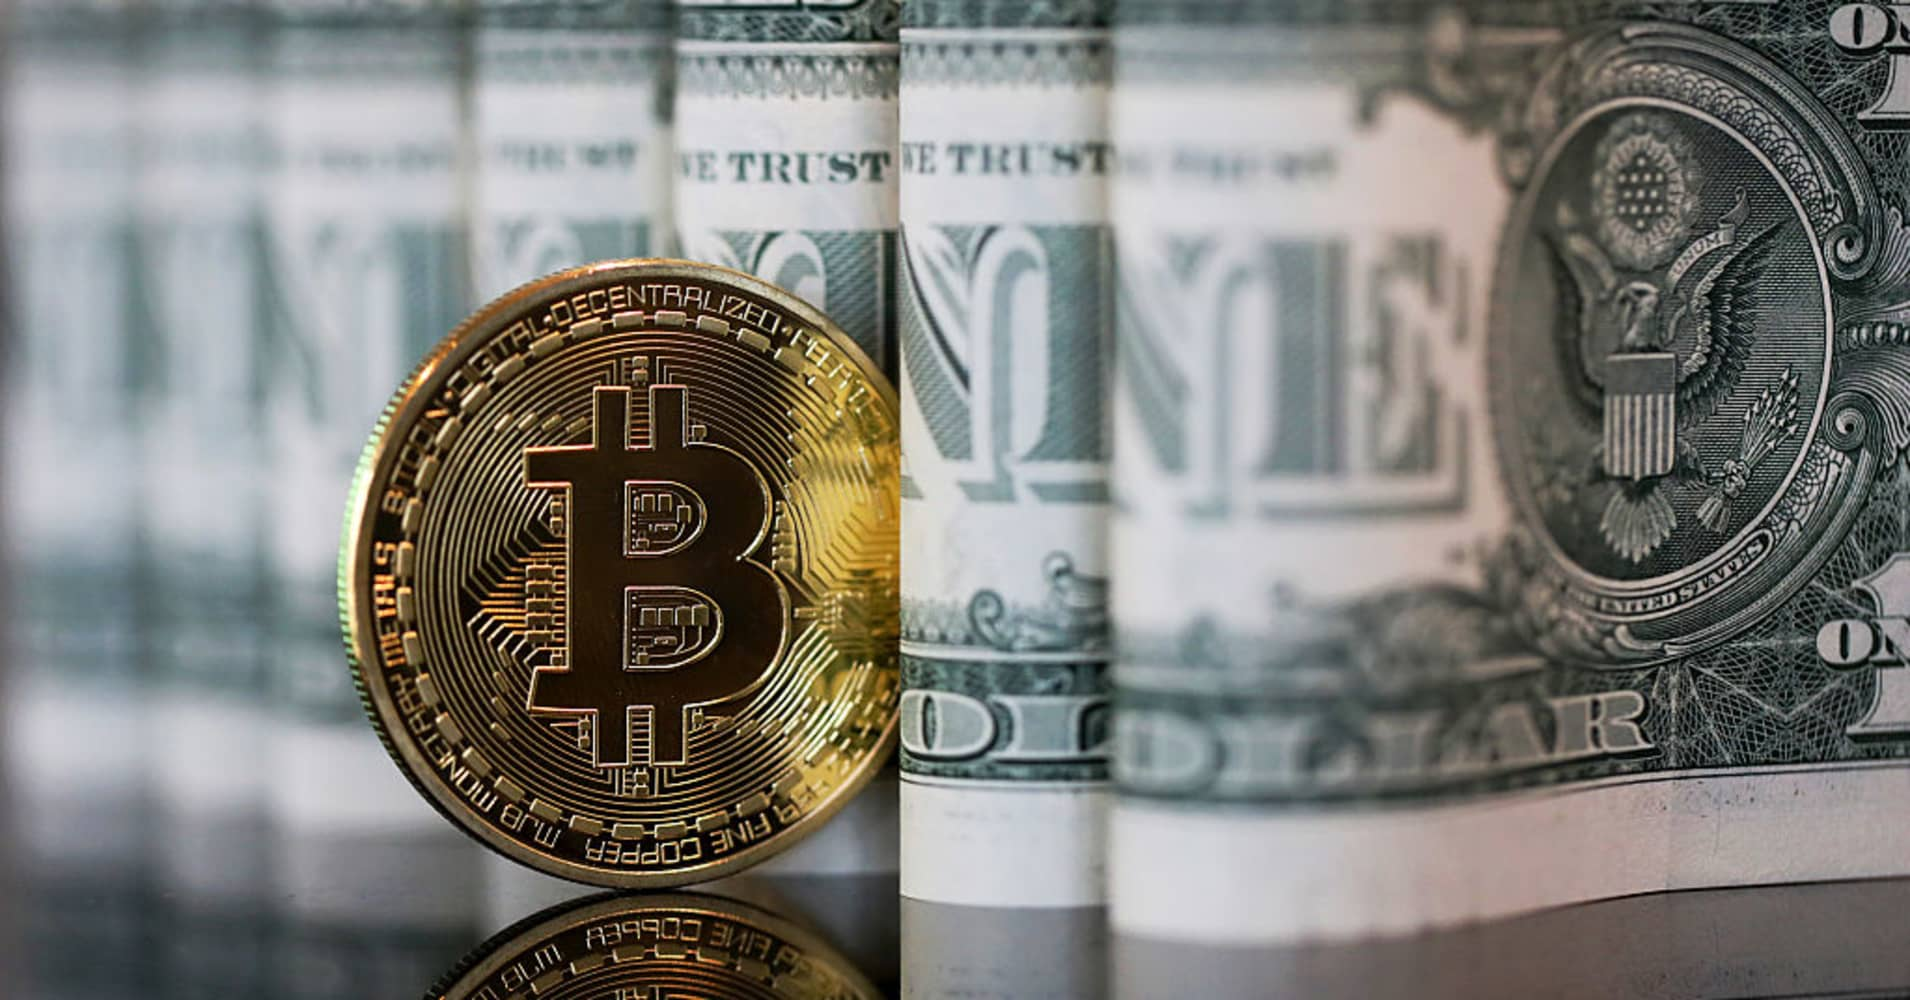 Someone Mysteriously Sent Almost $1 Billion ($933M) in Bitcoin…